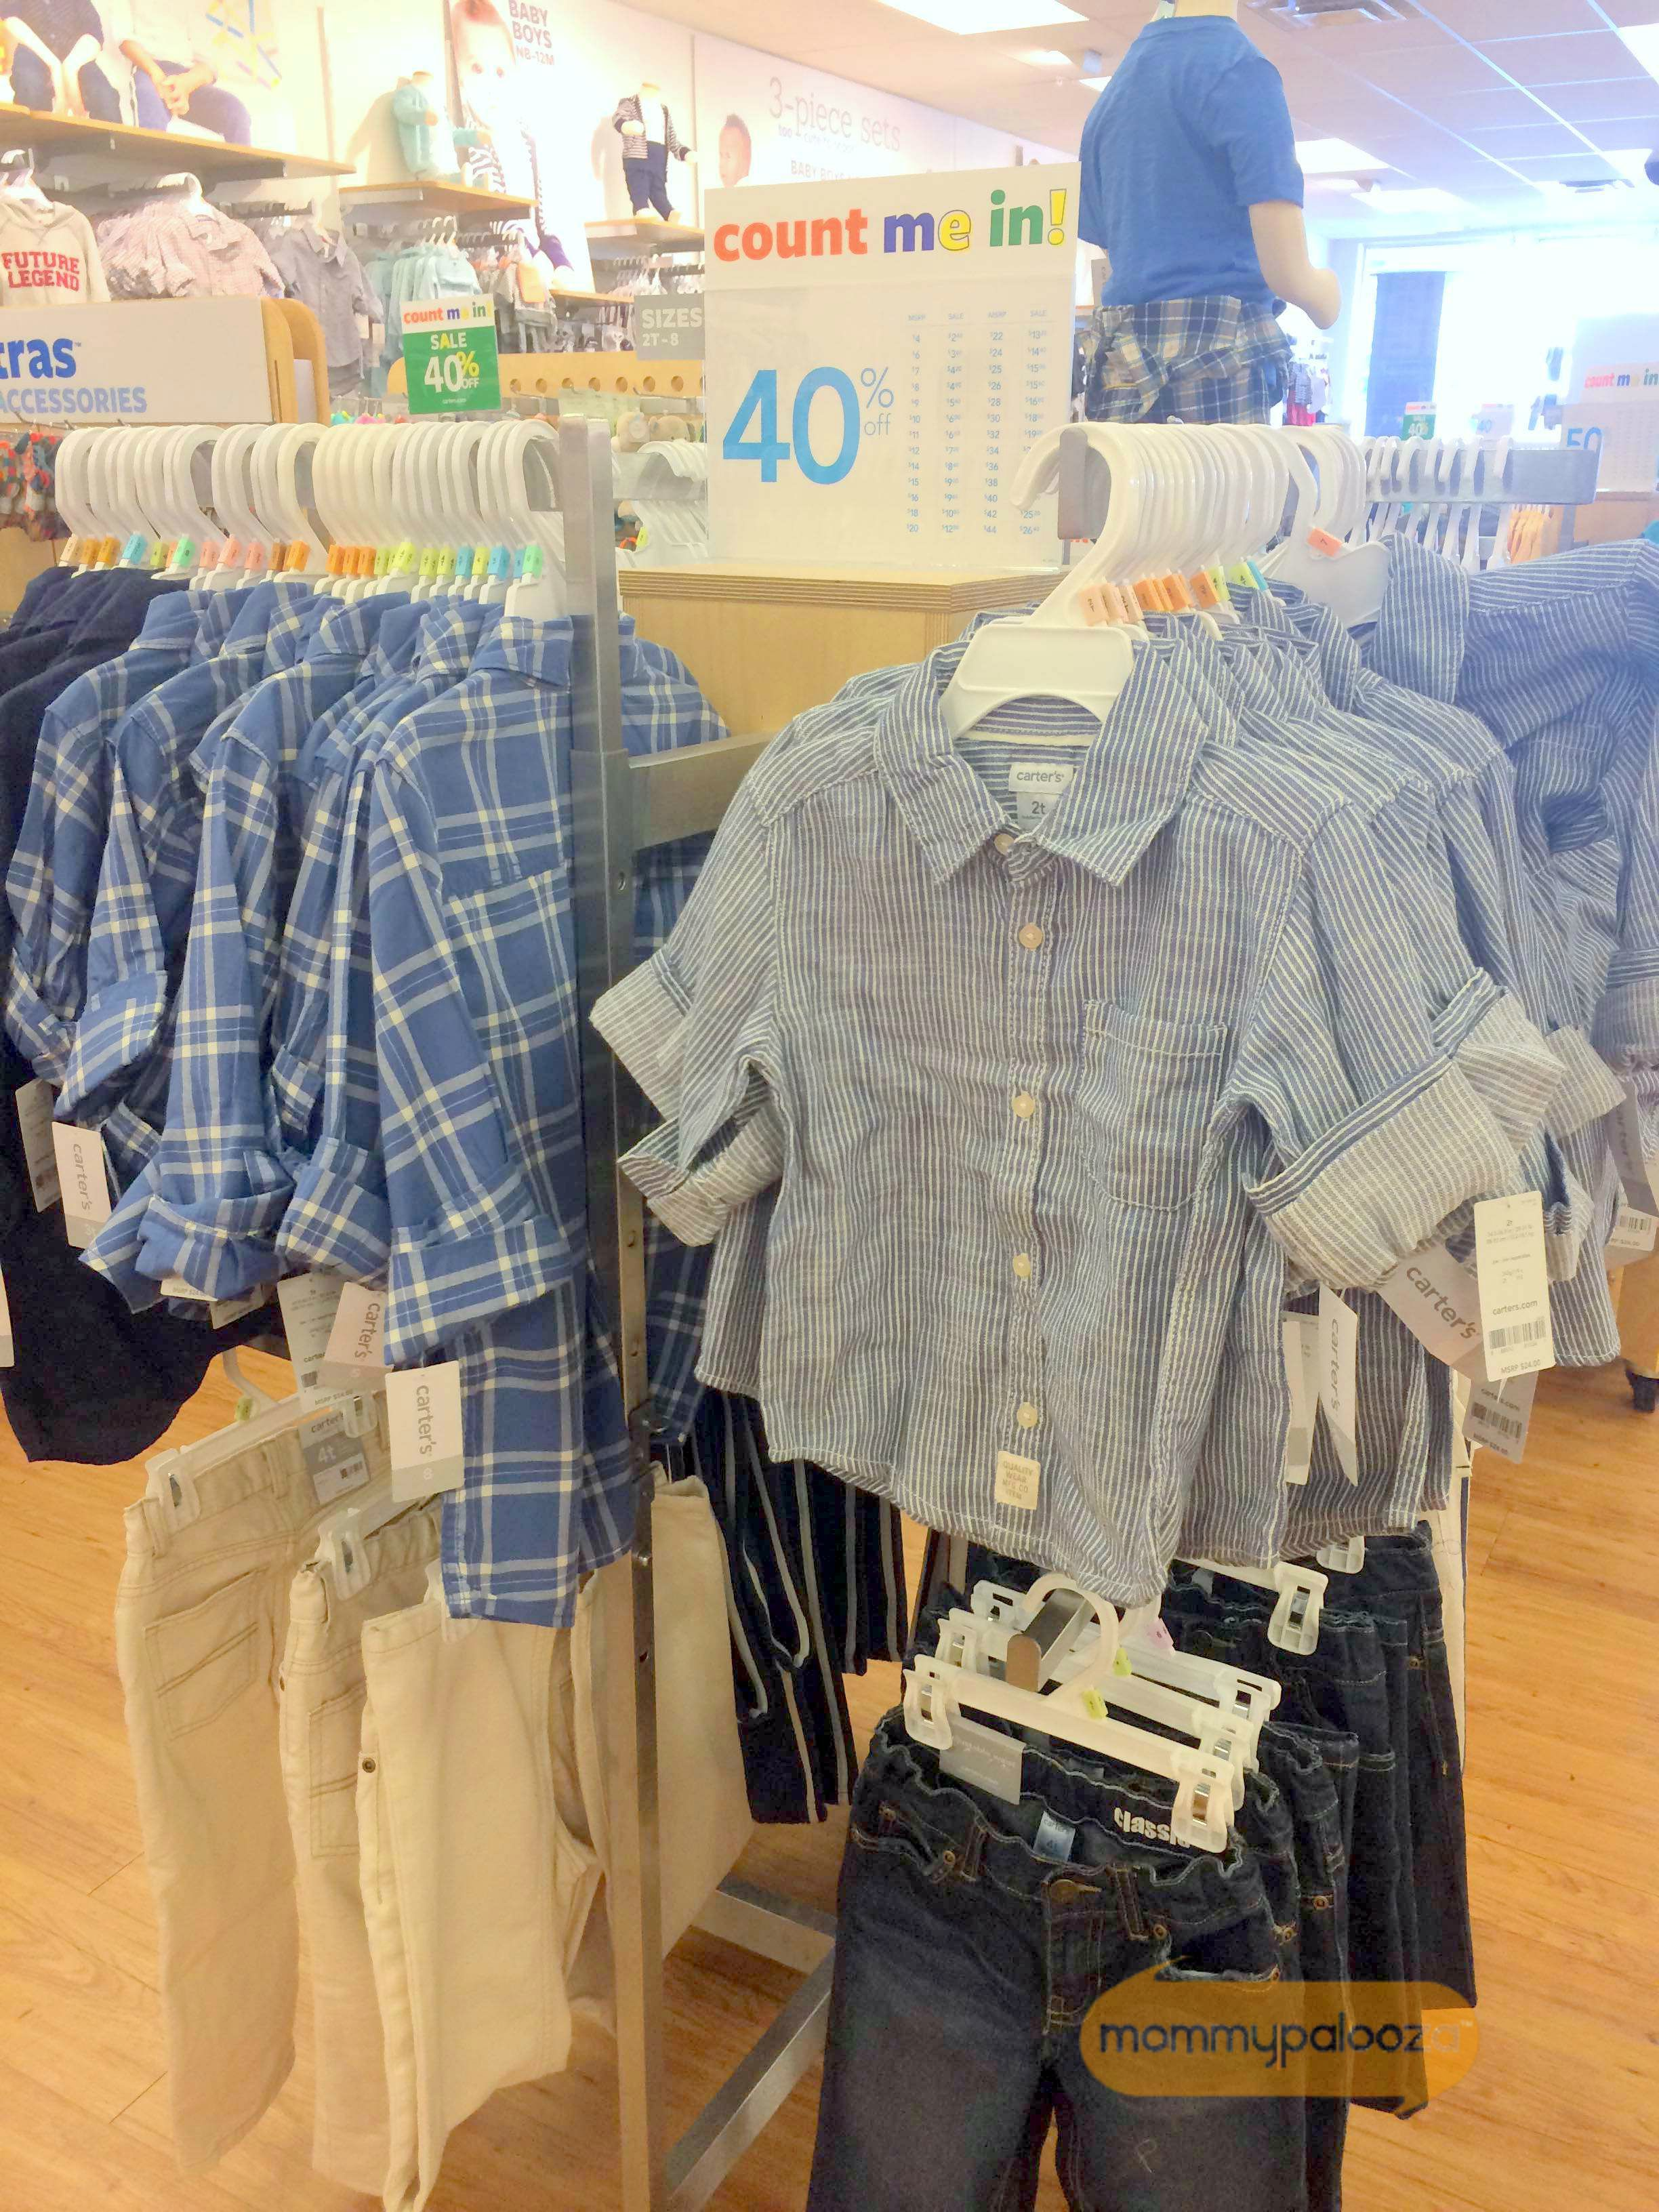 Carter's stores have everything your kids need for back to school season. With their fantastic sales and coupons like this, you can get a great deal on kids' jeans, tops, accessories, and all the basics. Their quality is really good and I love their fun and playful designs, plus they now carry size 8 - which is great!